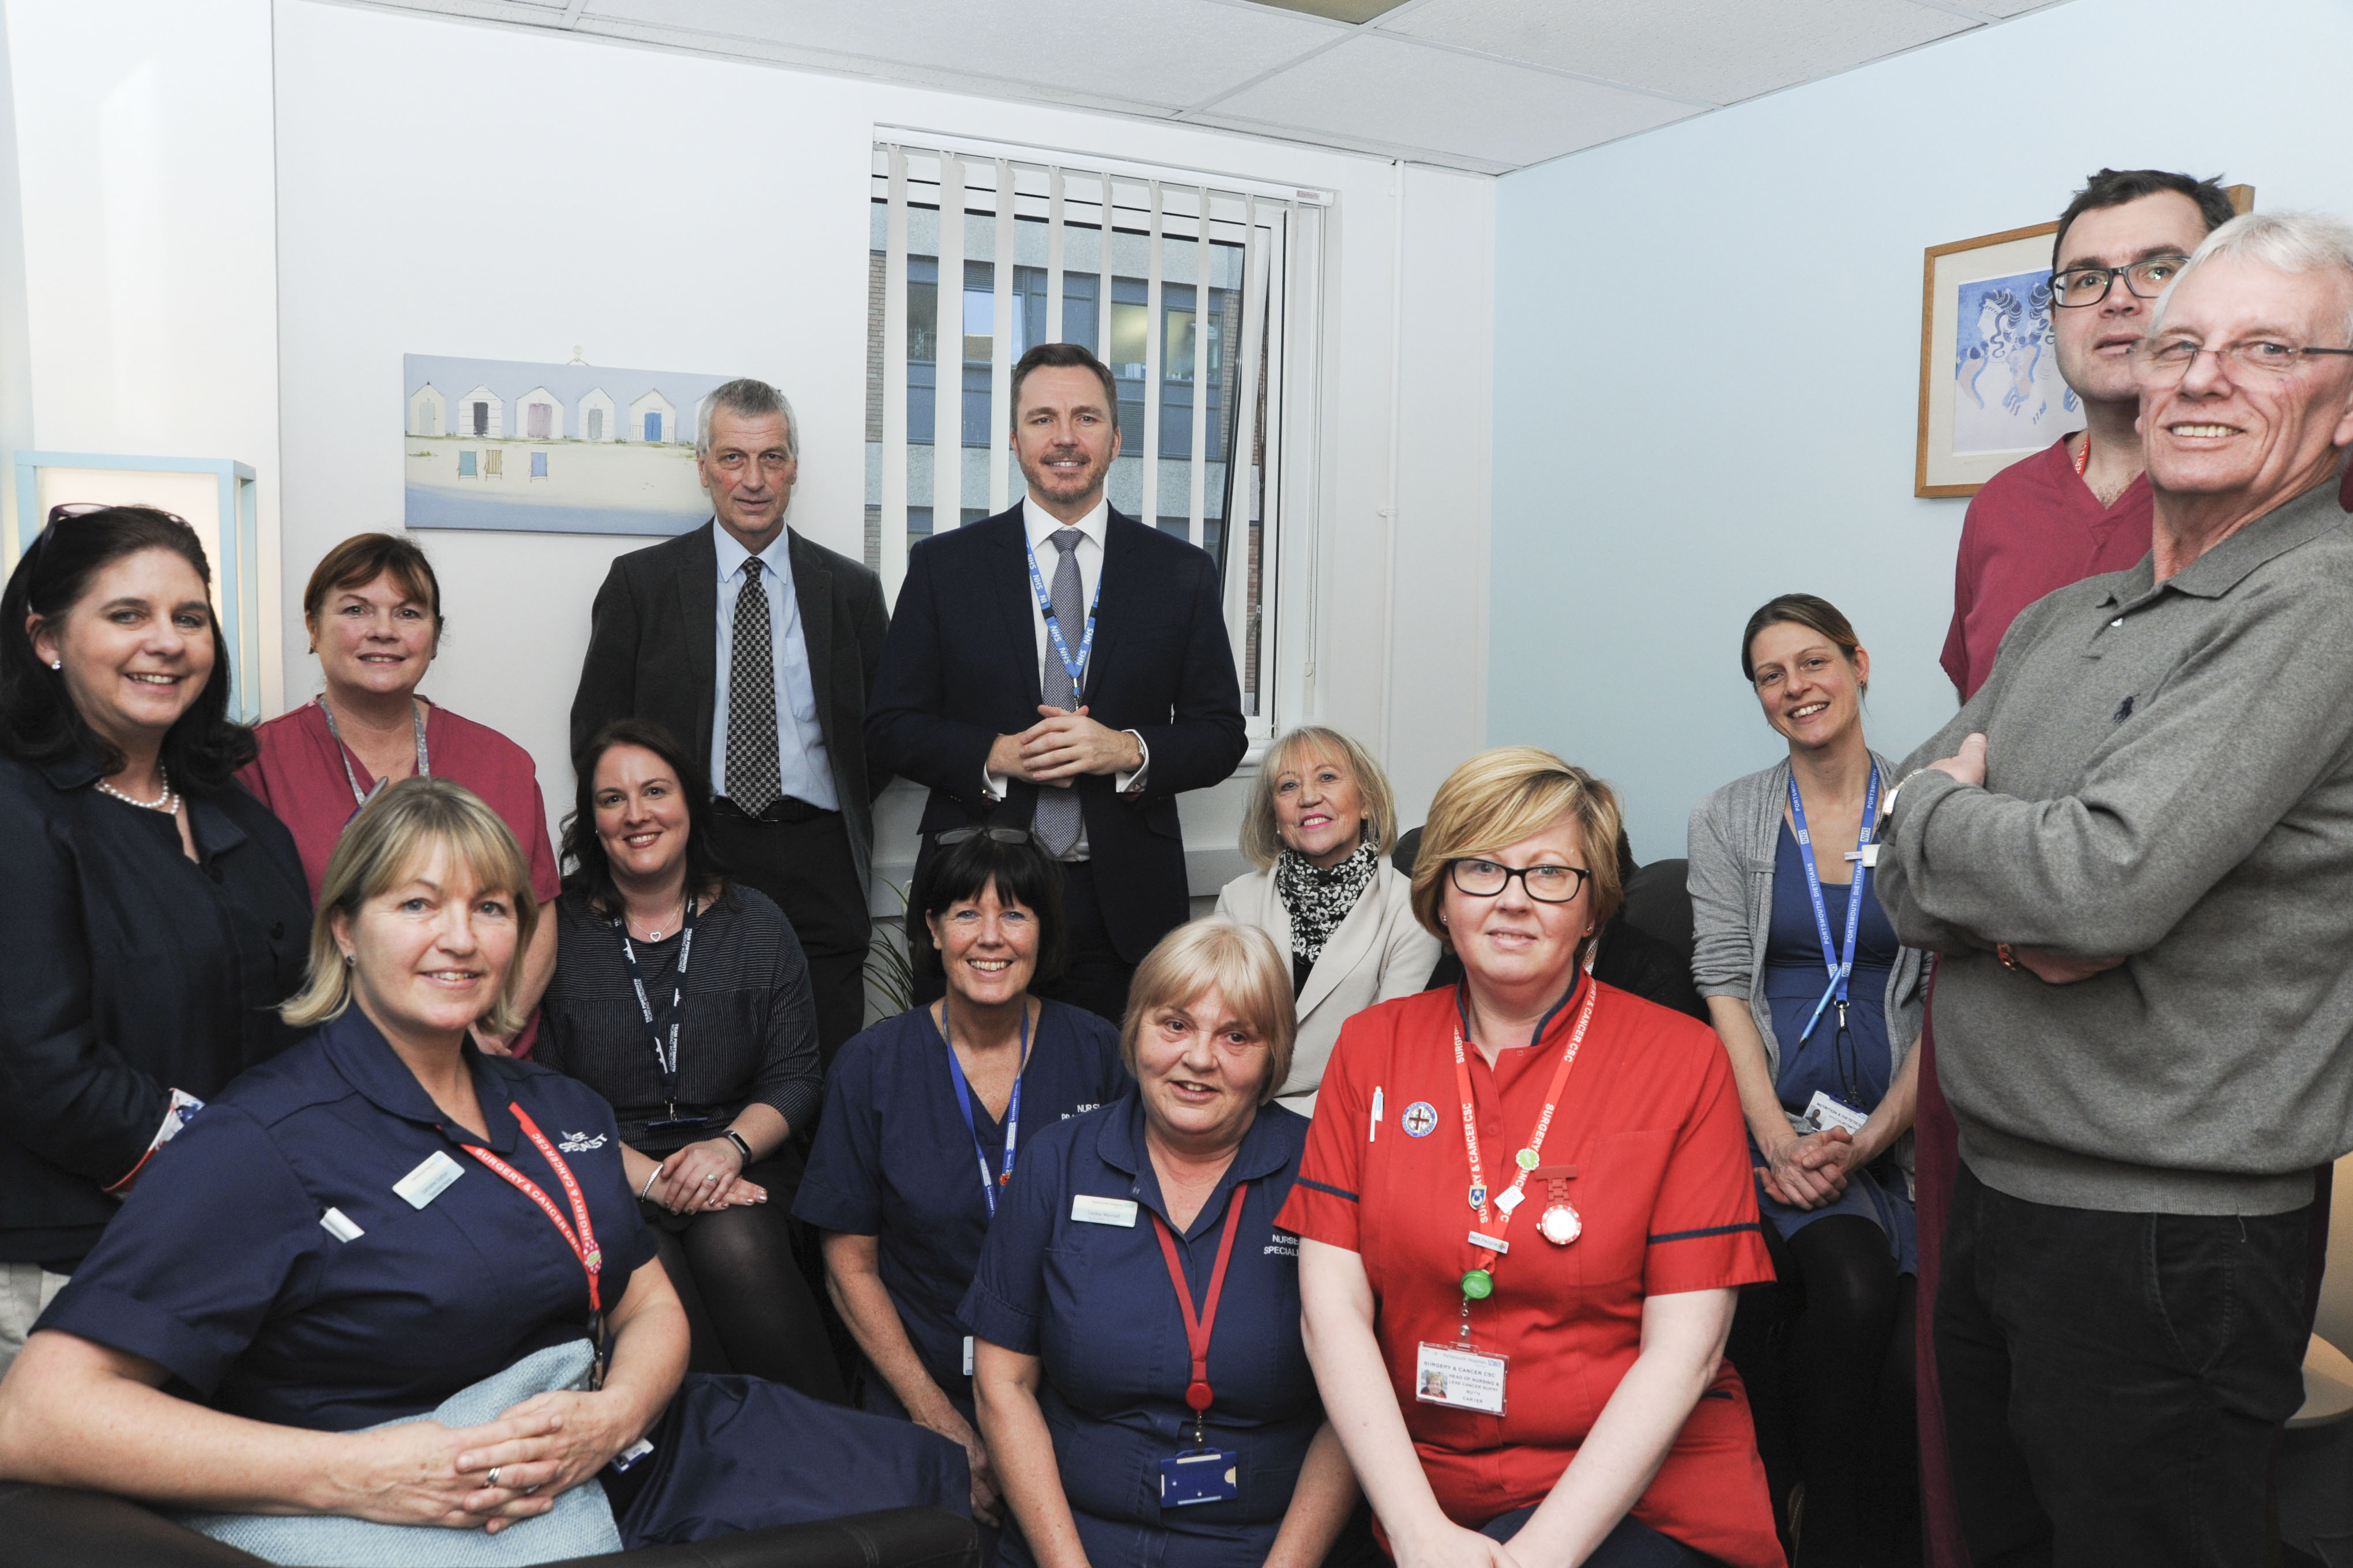 Local charity donate £7,000 to benefit cancer patients